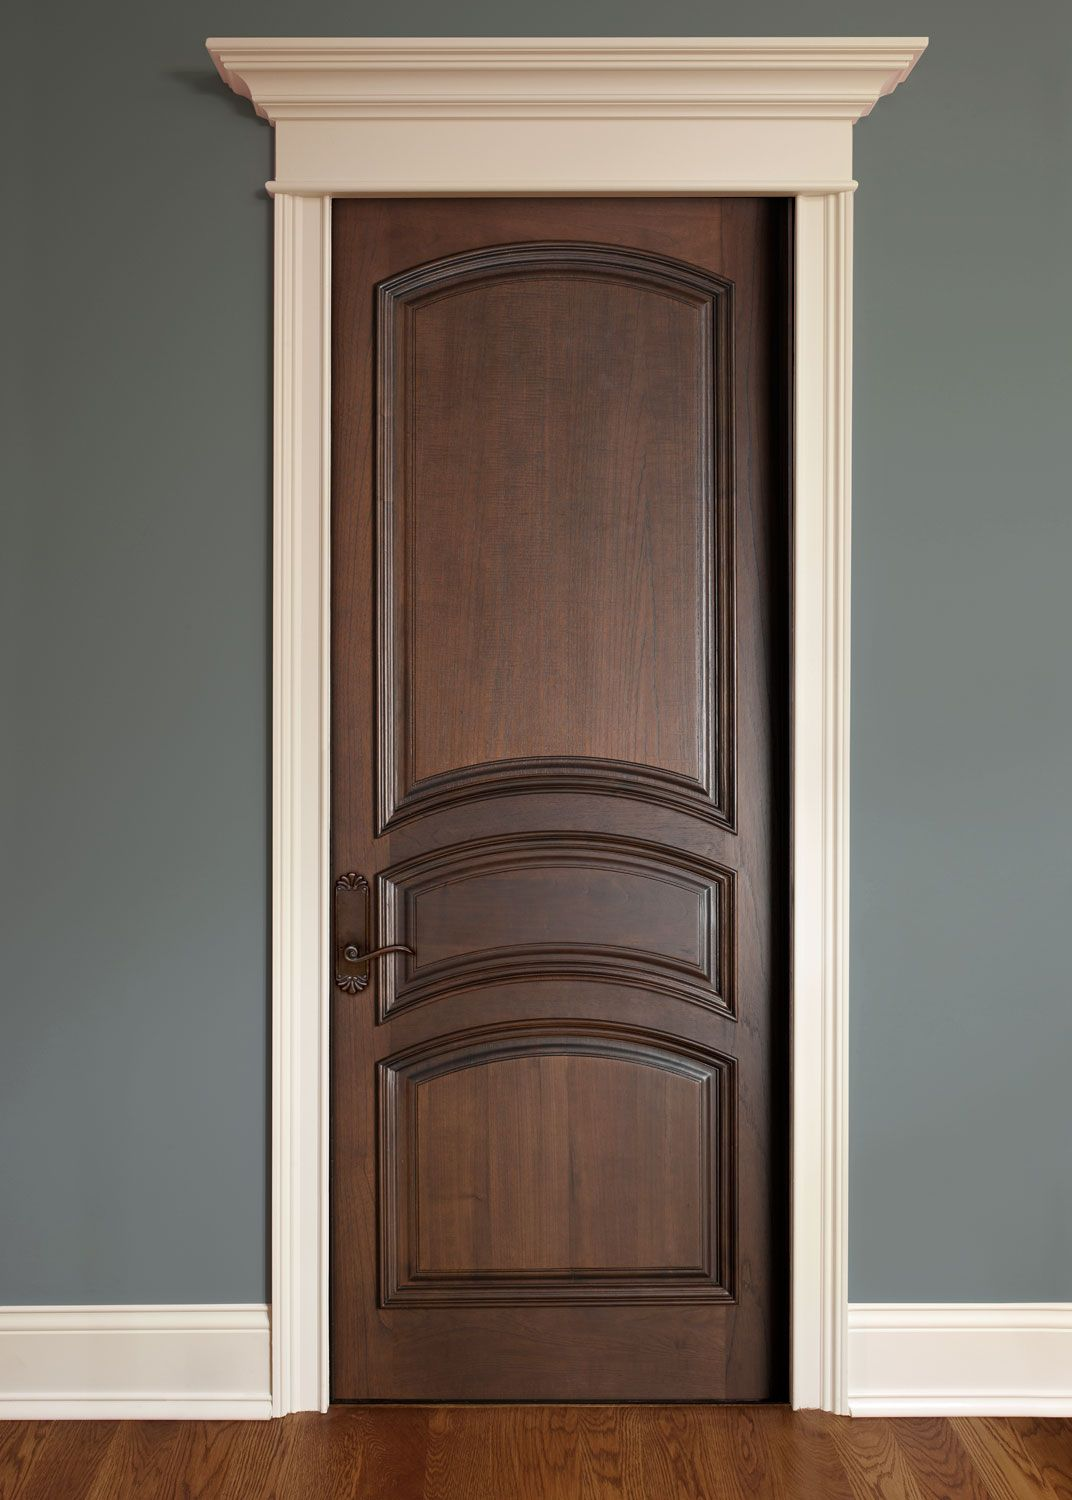 Exceptional Interior Door Custom   Single   Solid Wood With Walnut Finish, Classic,  Model DBI 611A